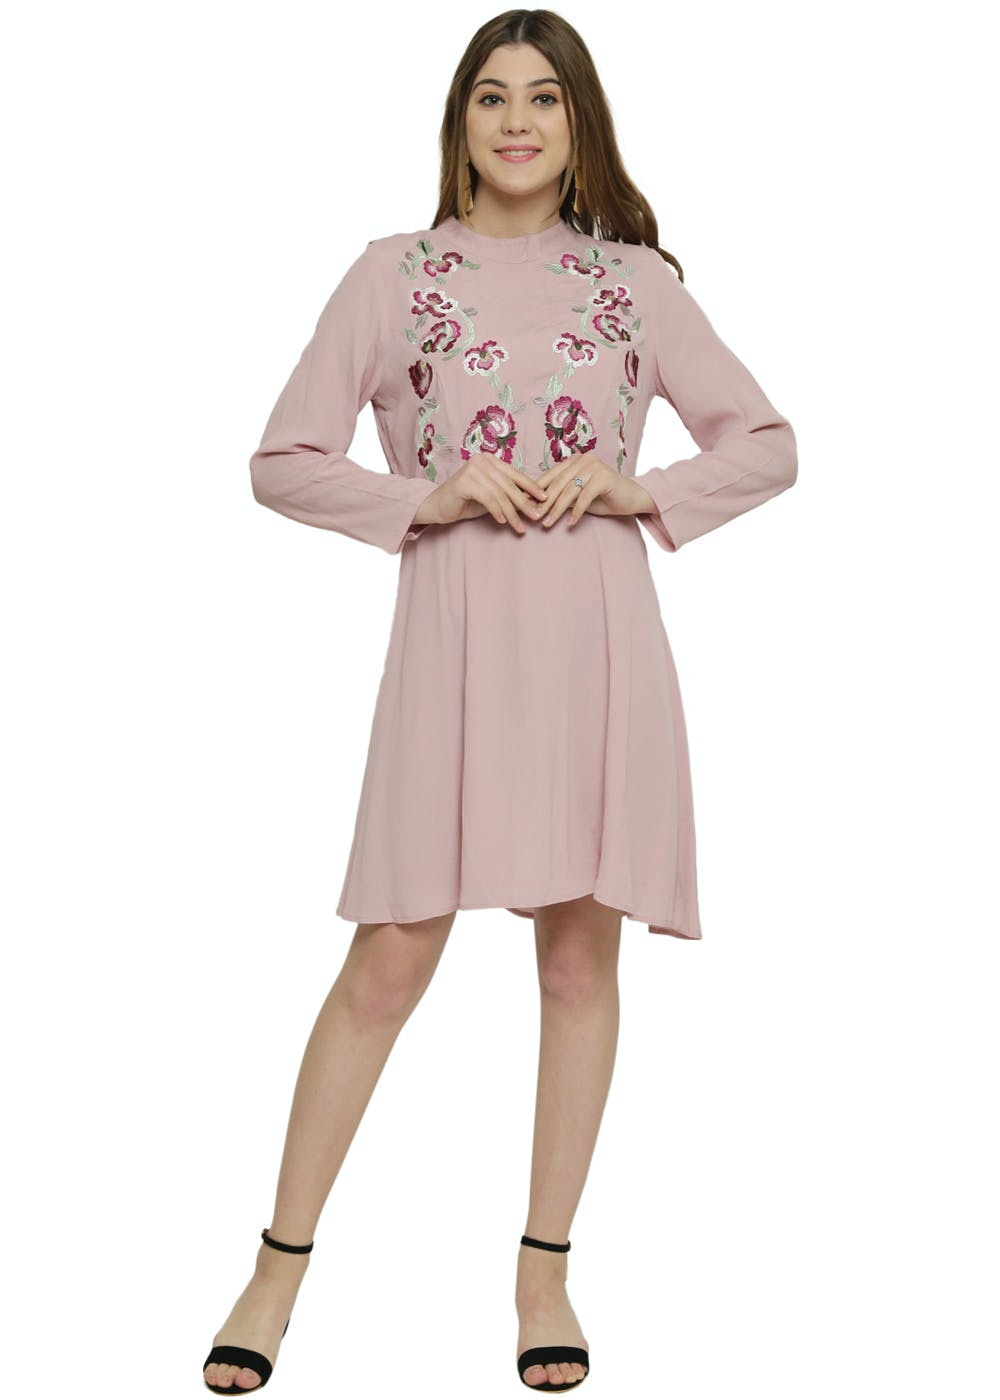 Contrast Floral Embroidered Peach Fit & Flare Dress